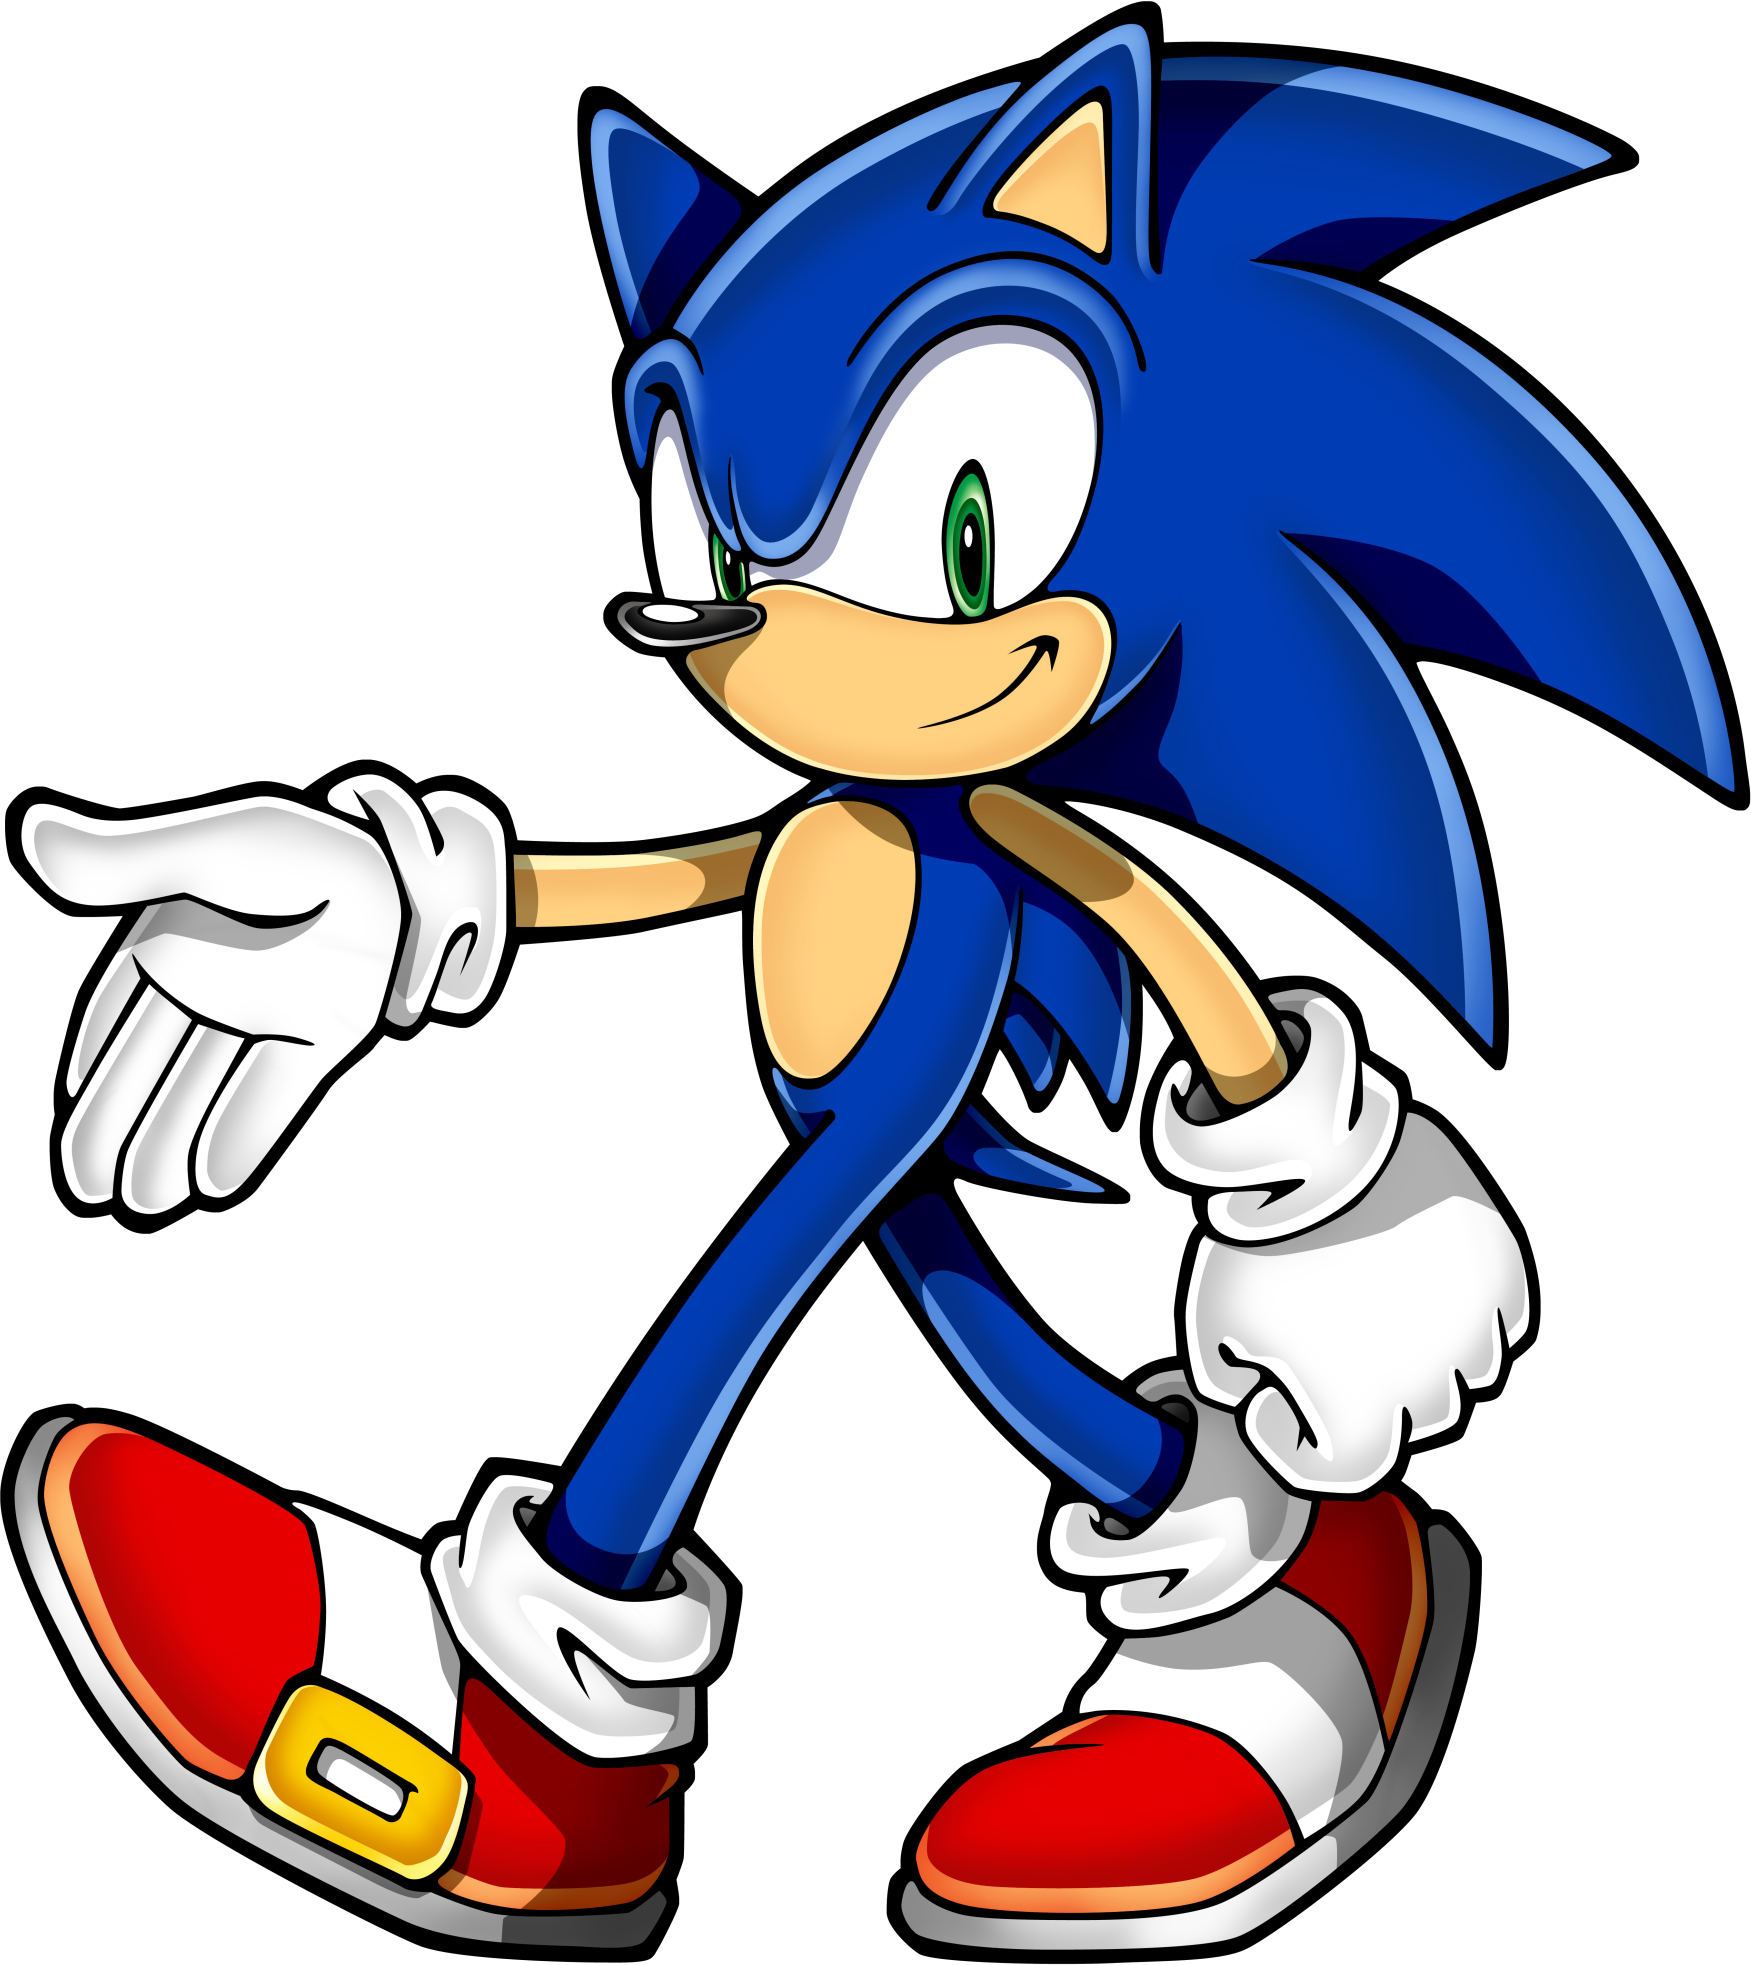 Sonic The Hedgehog clipart #1, Download drawings